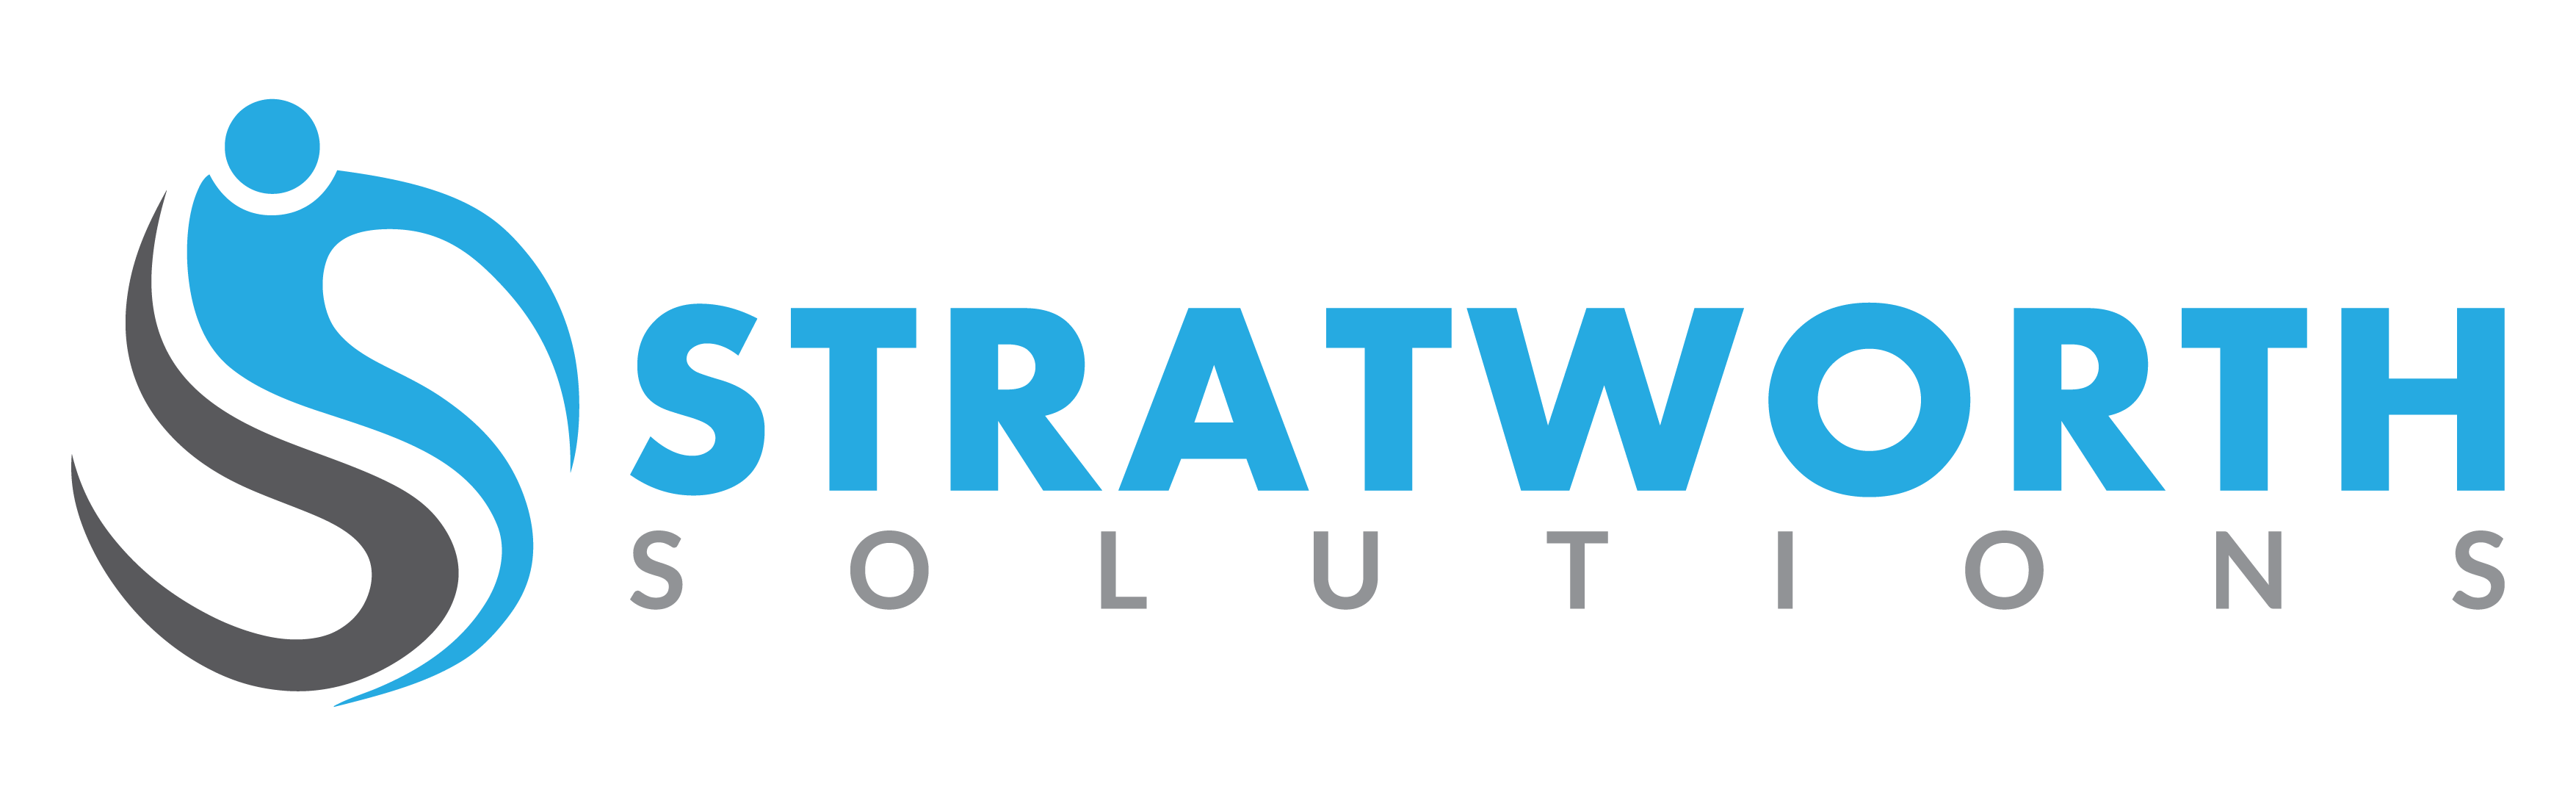 Stratworth Solutions Inc.